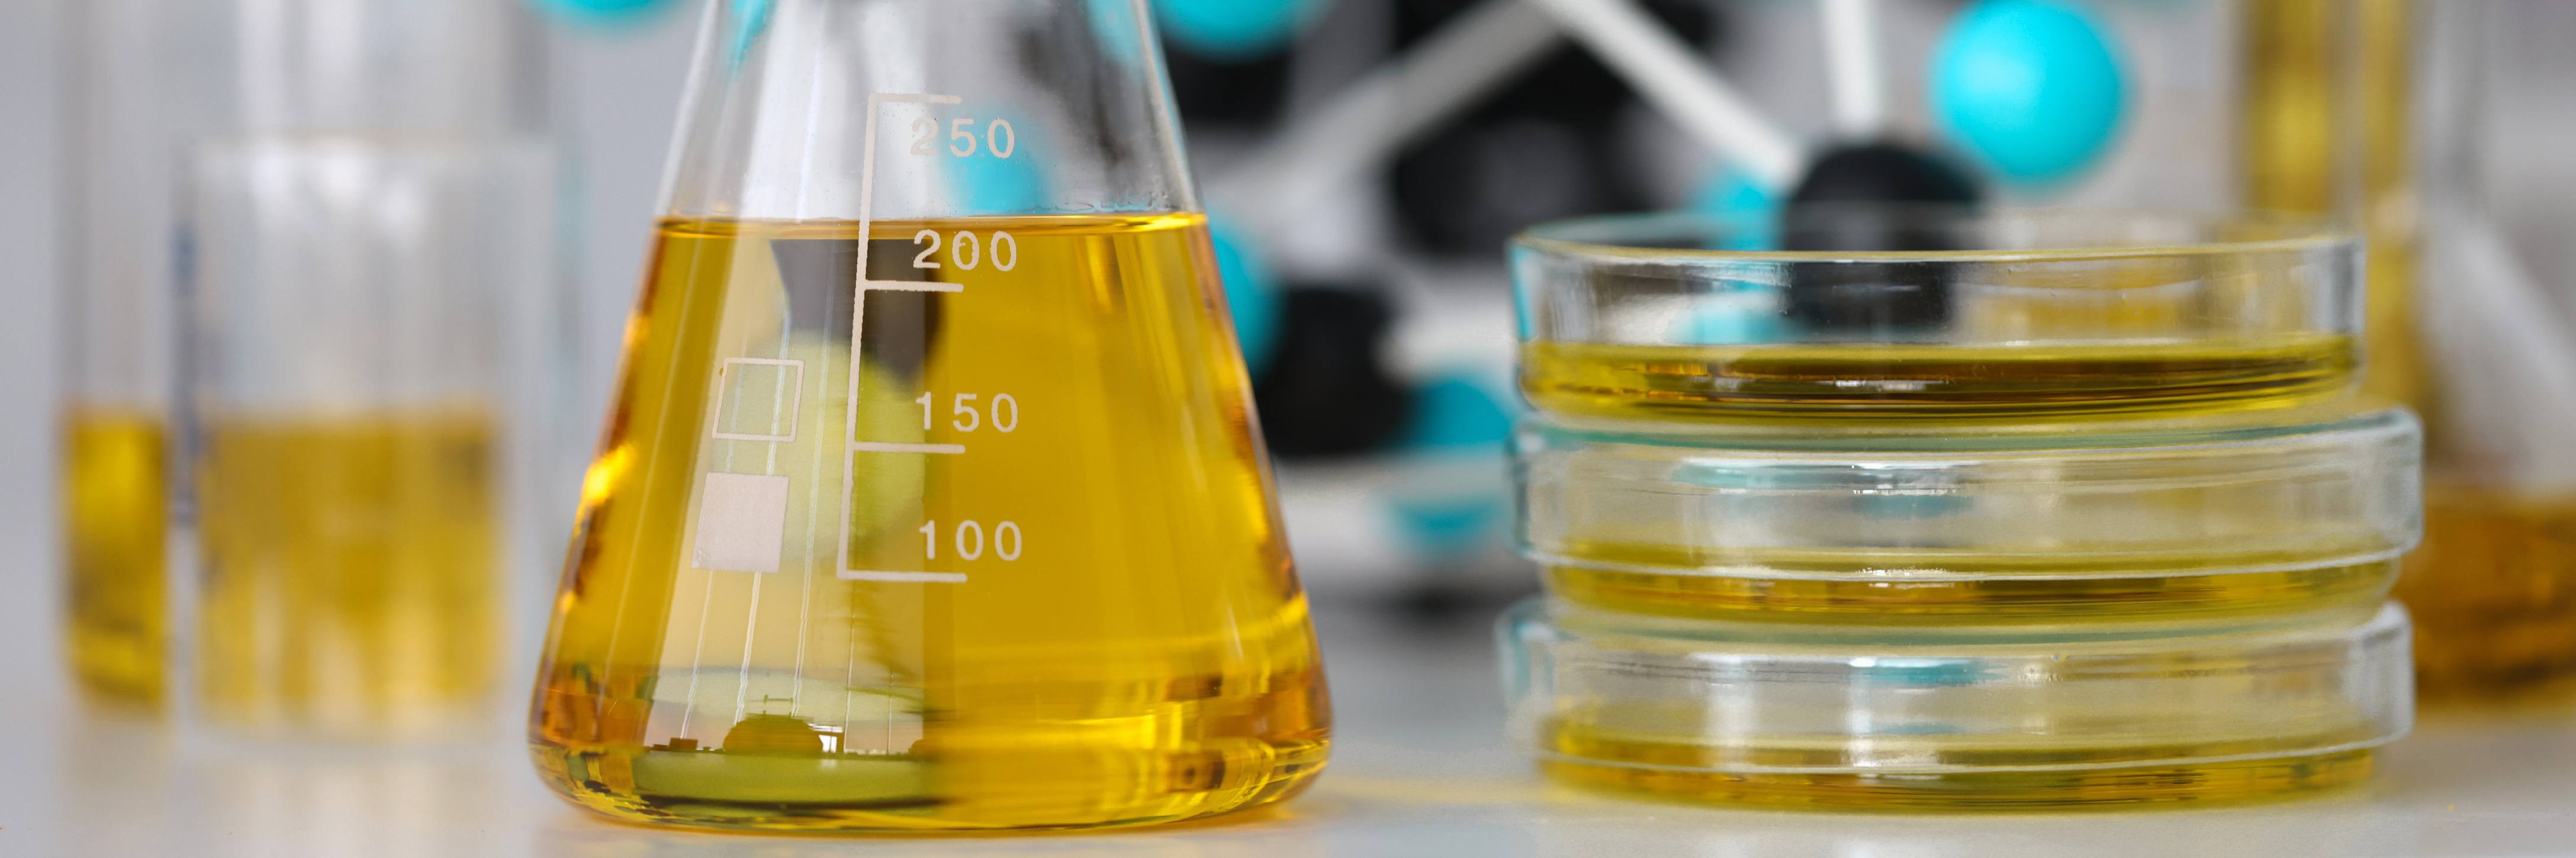 diesel fuel in lab glassware